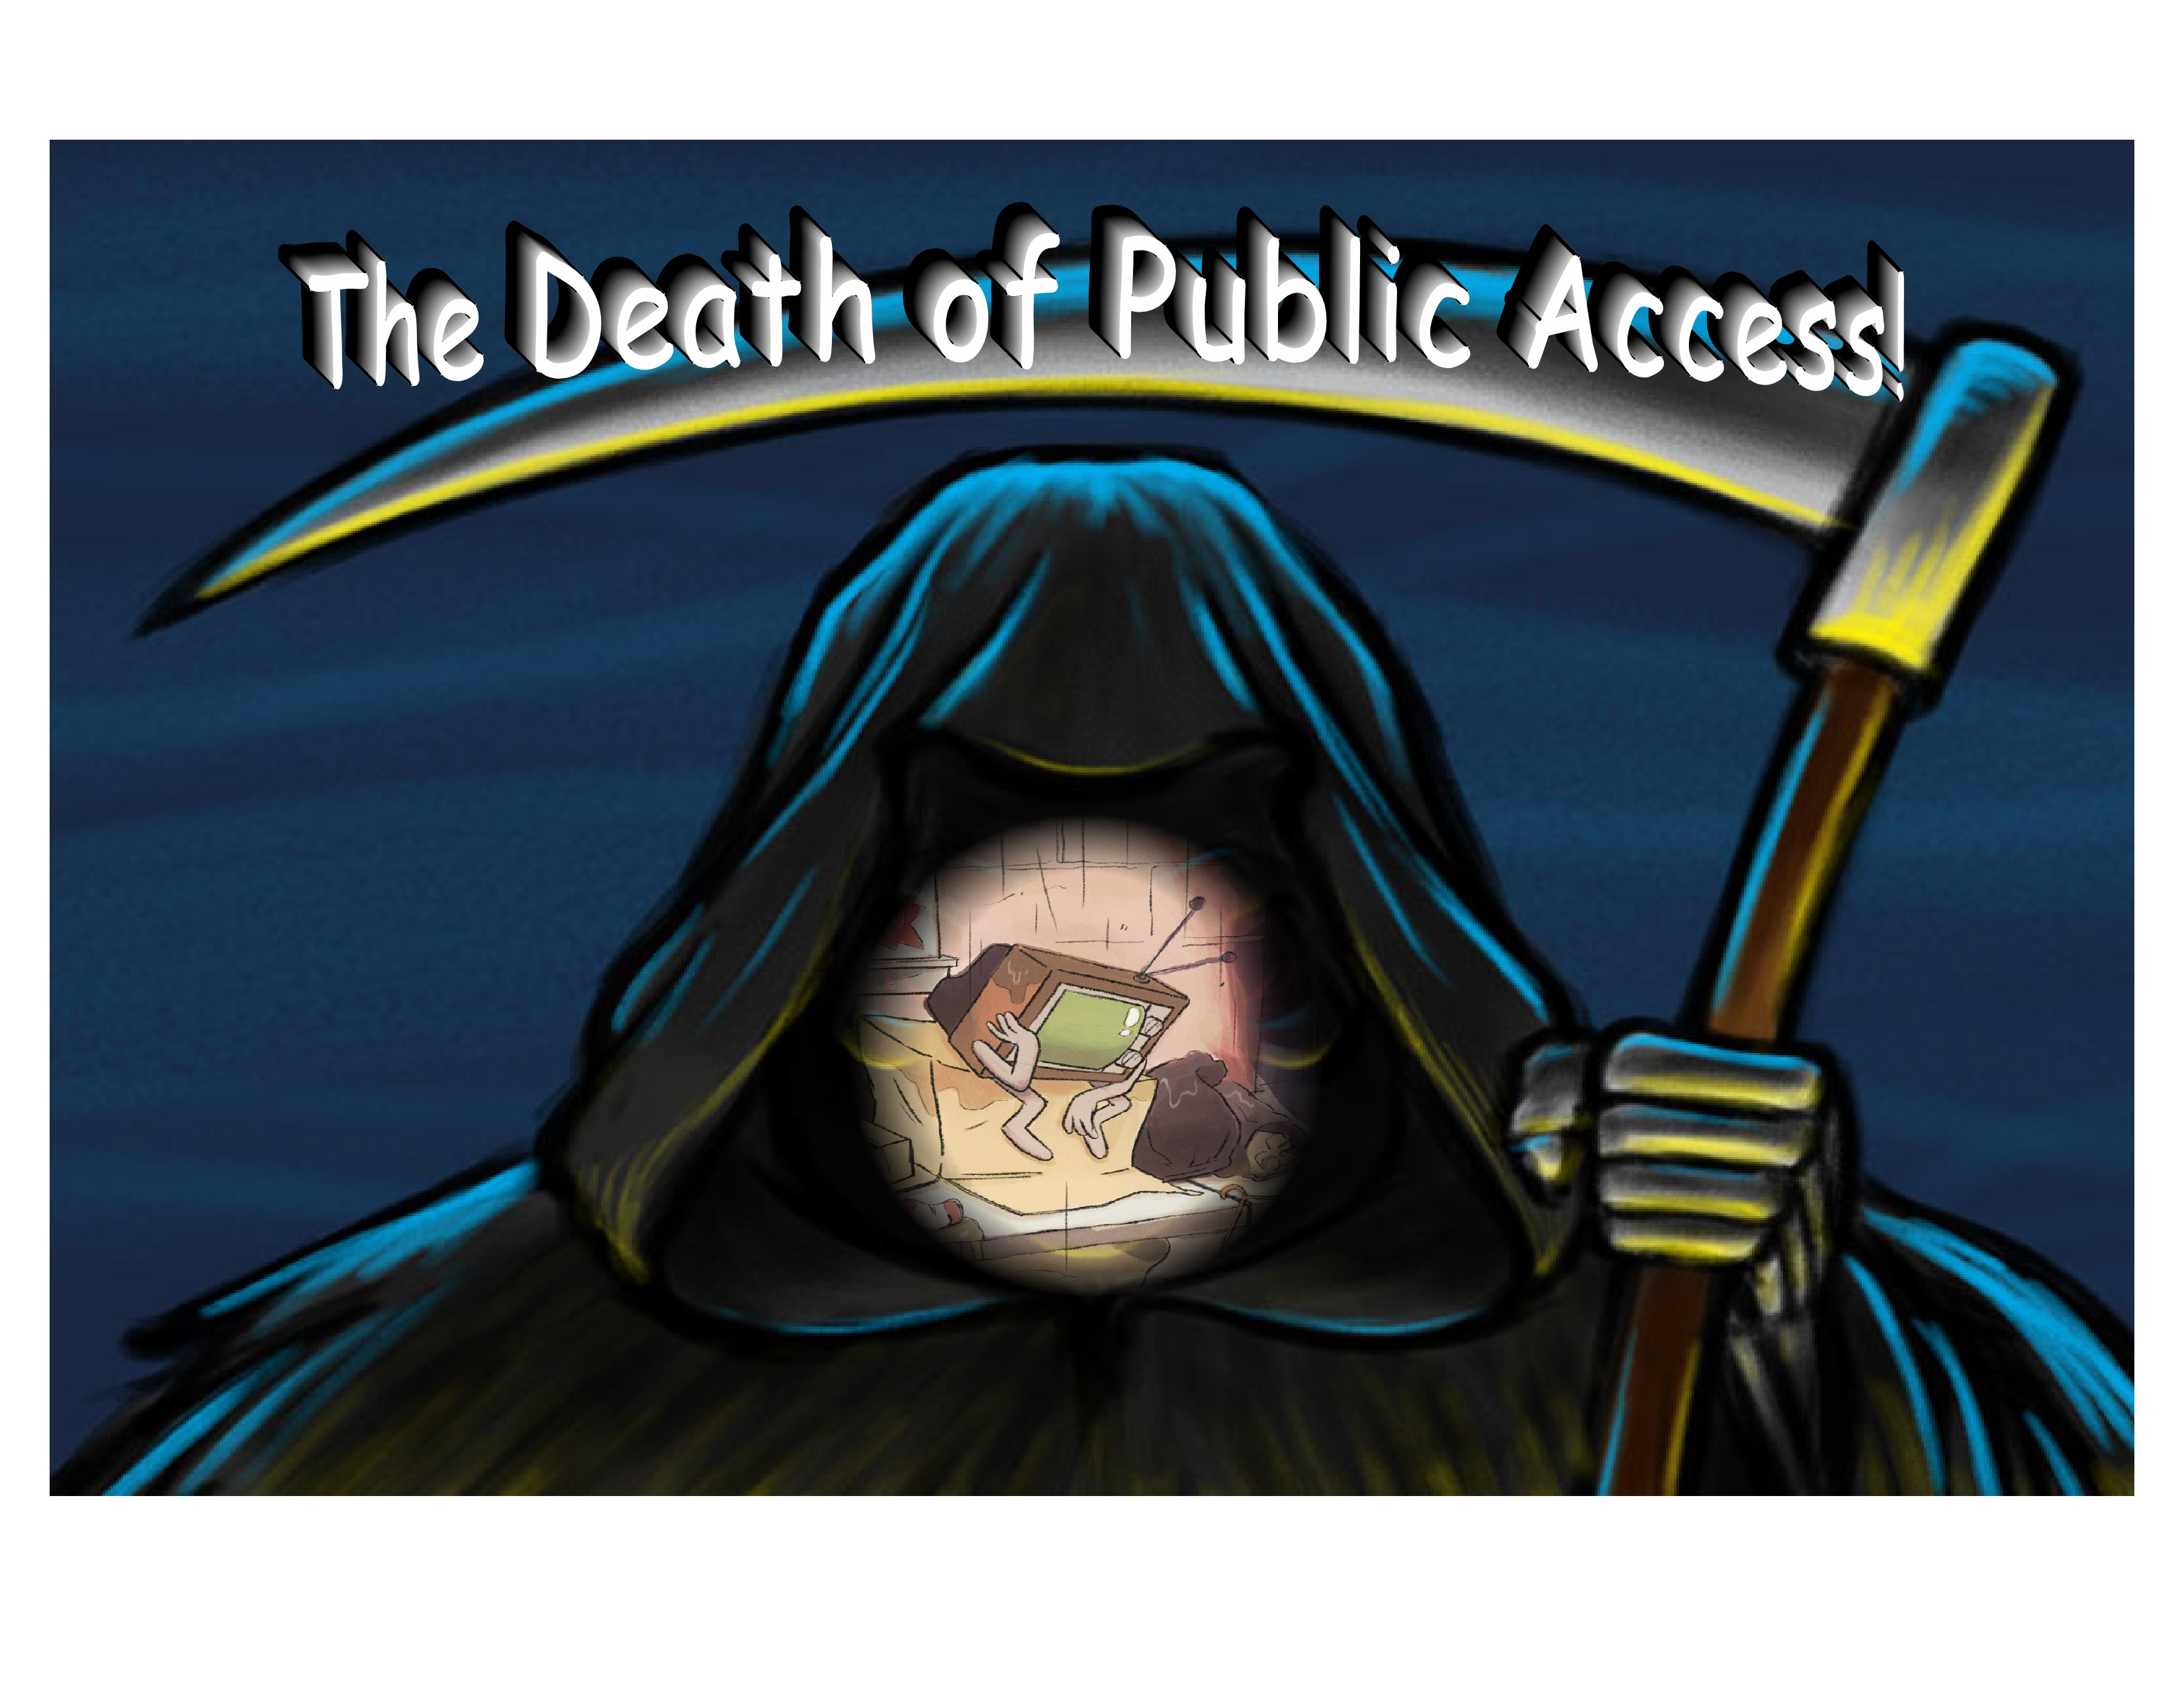 The Death of Public Access!